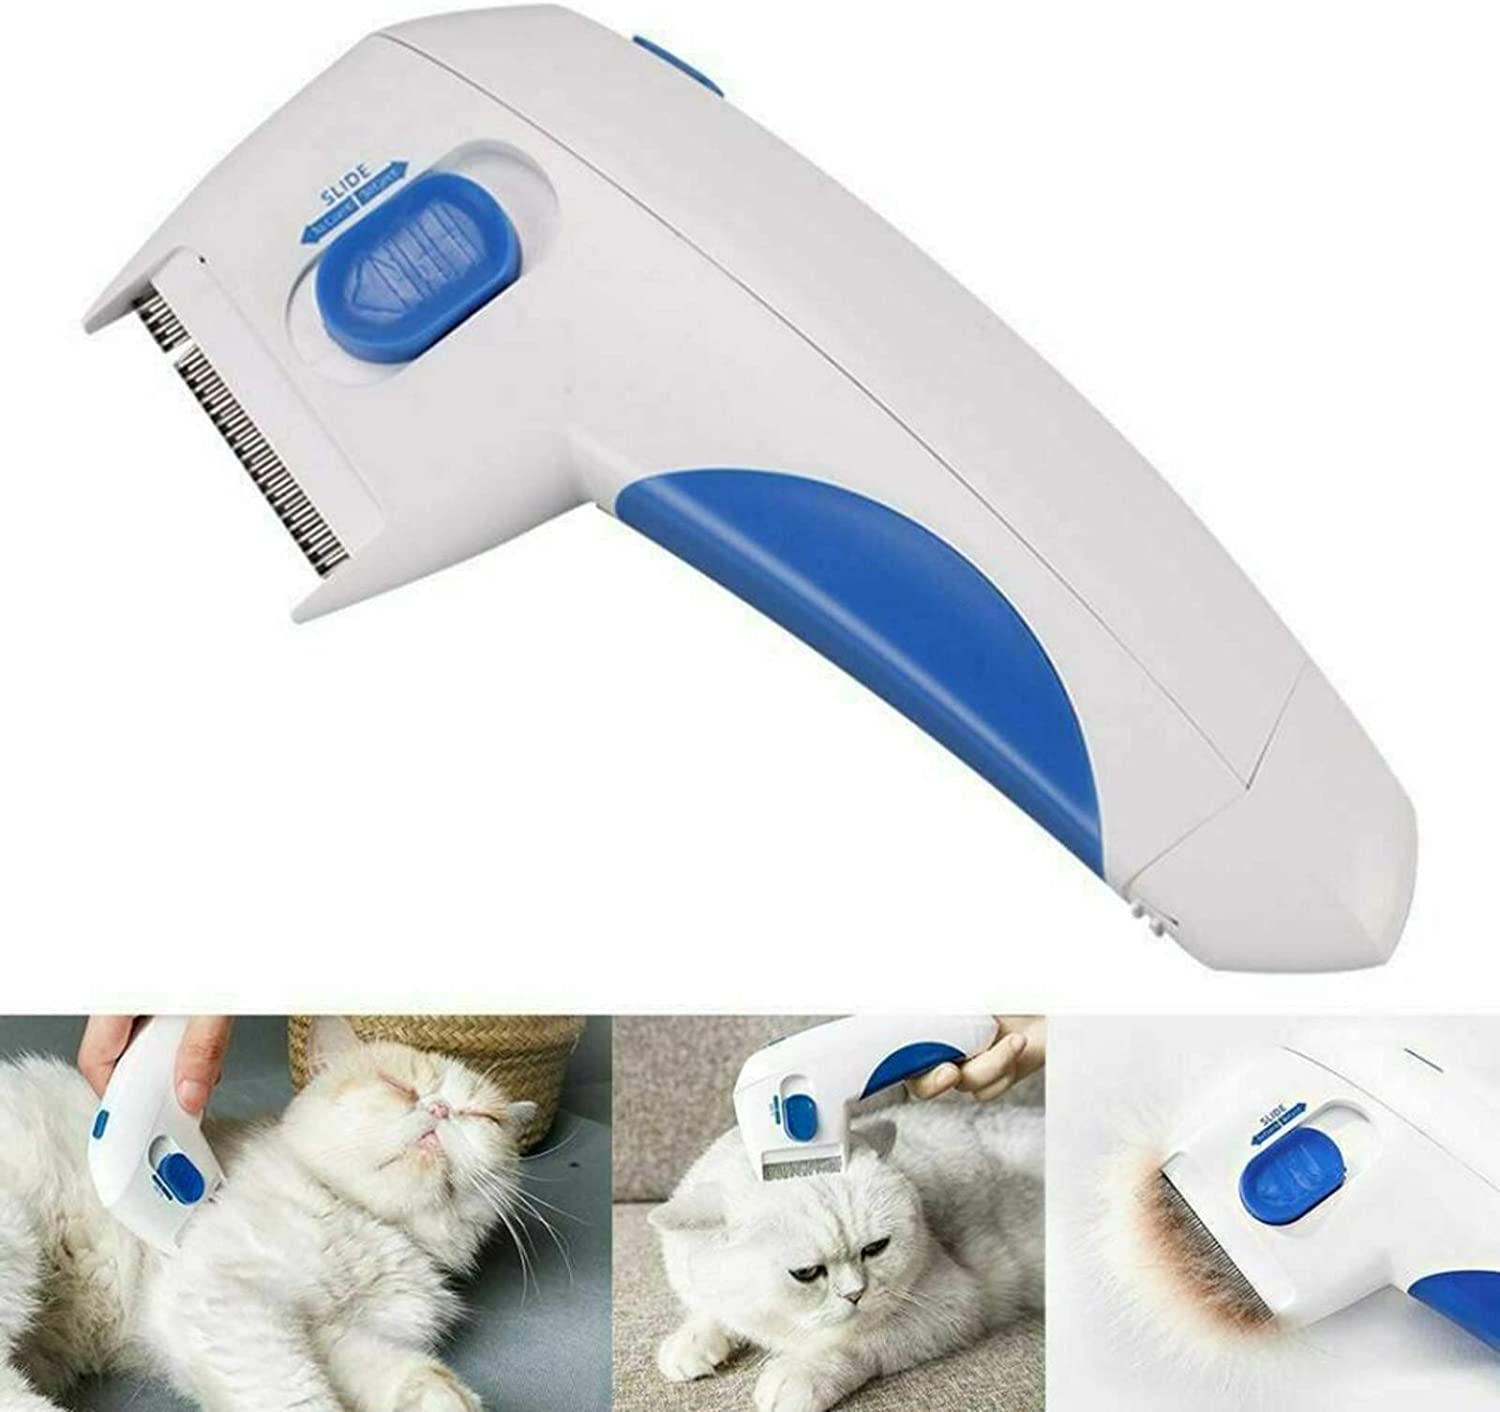 Electronic Comb Flea Electronic Flea Comb Perfect for Dogs /& Cats LOVIVER Flea Comb for Pets Electric Flea Comb Pet Flea Comb Fleas Remover